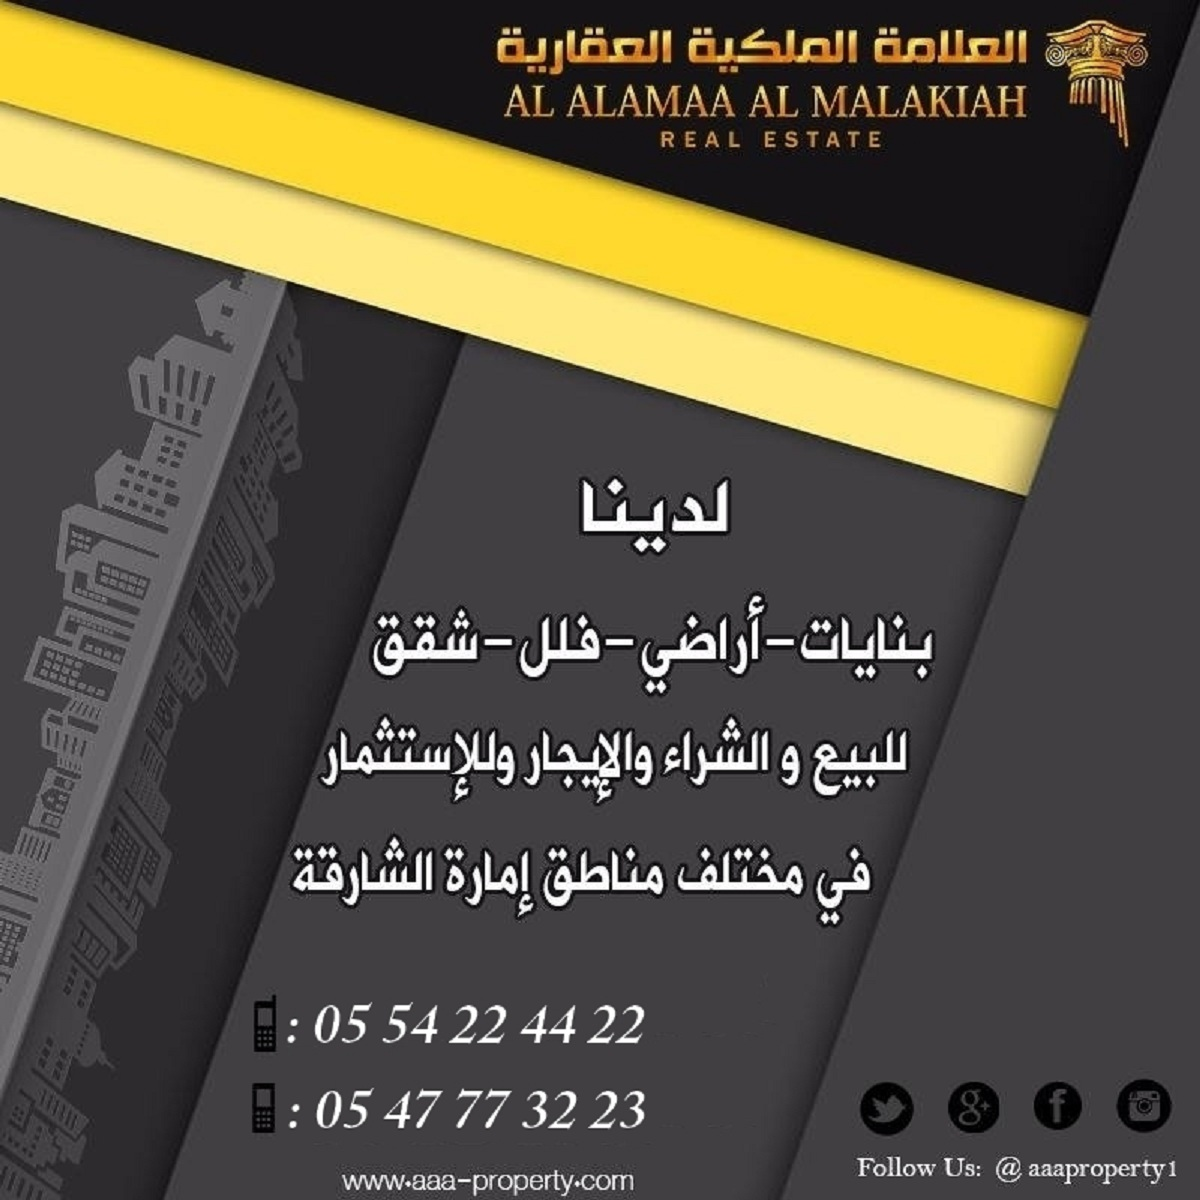 ِAl Alamaa Al Malakiah real estate